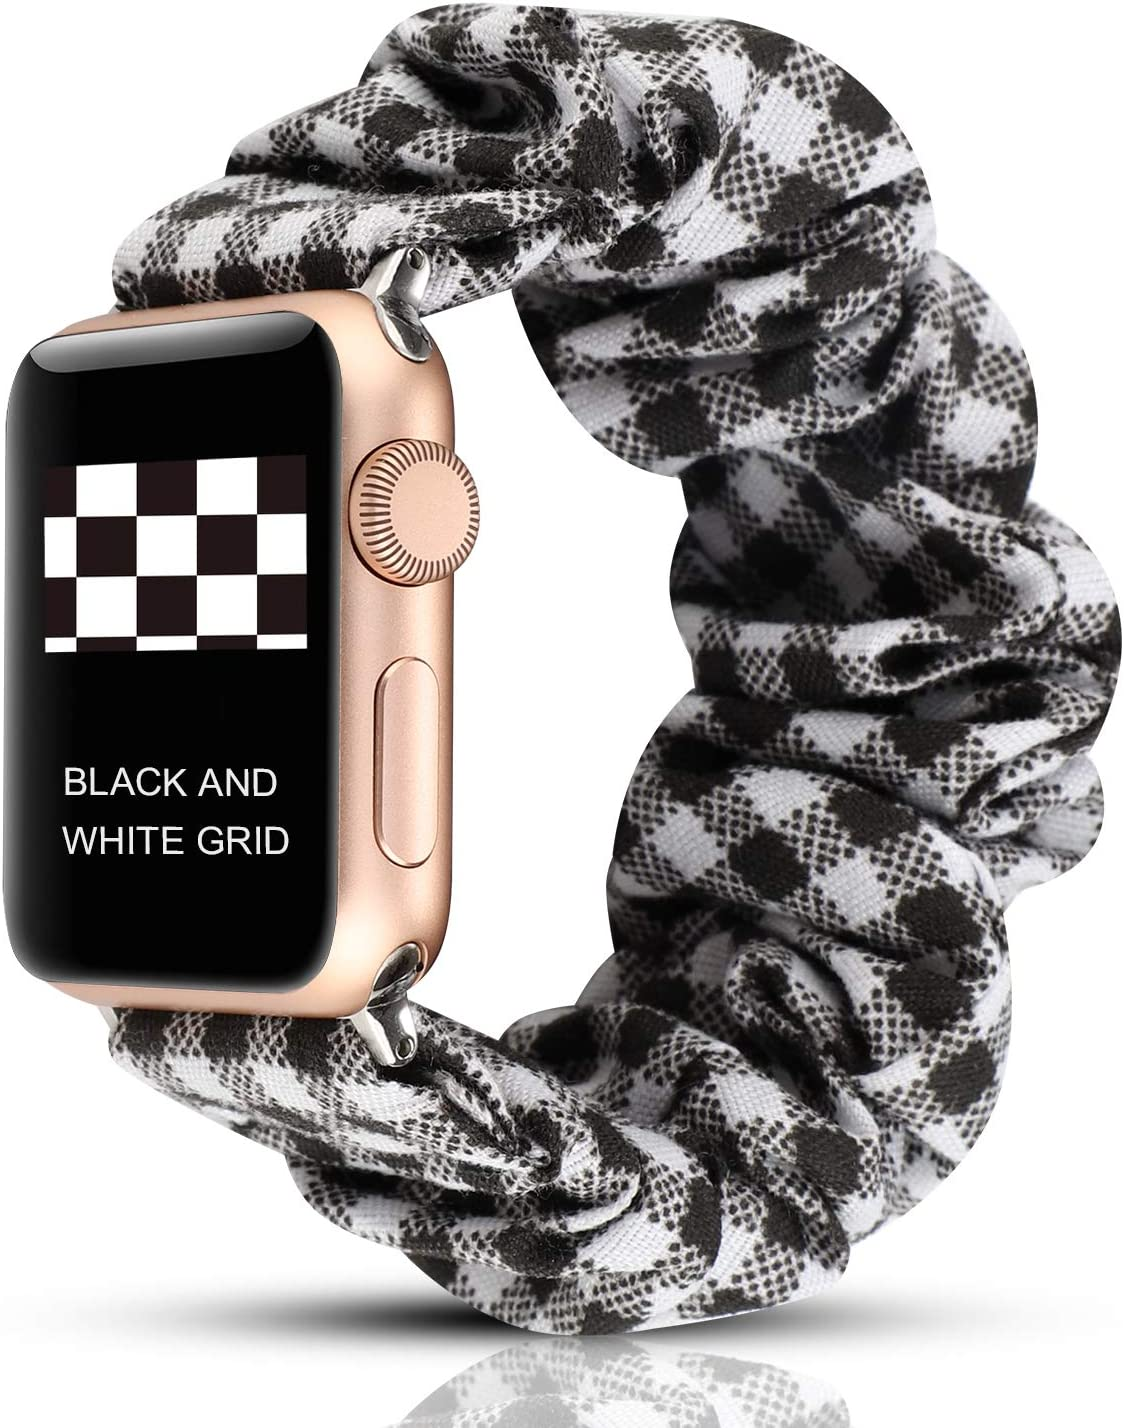 YOSWAN Scrunchie Elastic Watch Band Compatible for Apple Watch Band 38mm 42mm Women Girls Cloth Hair Rubber Band Strap Bracelet for iwatch SE Series 6 5 4 3 2 1 (Black and White Grid, 42mm/44mm)